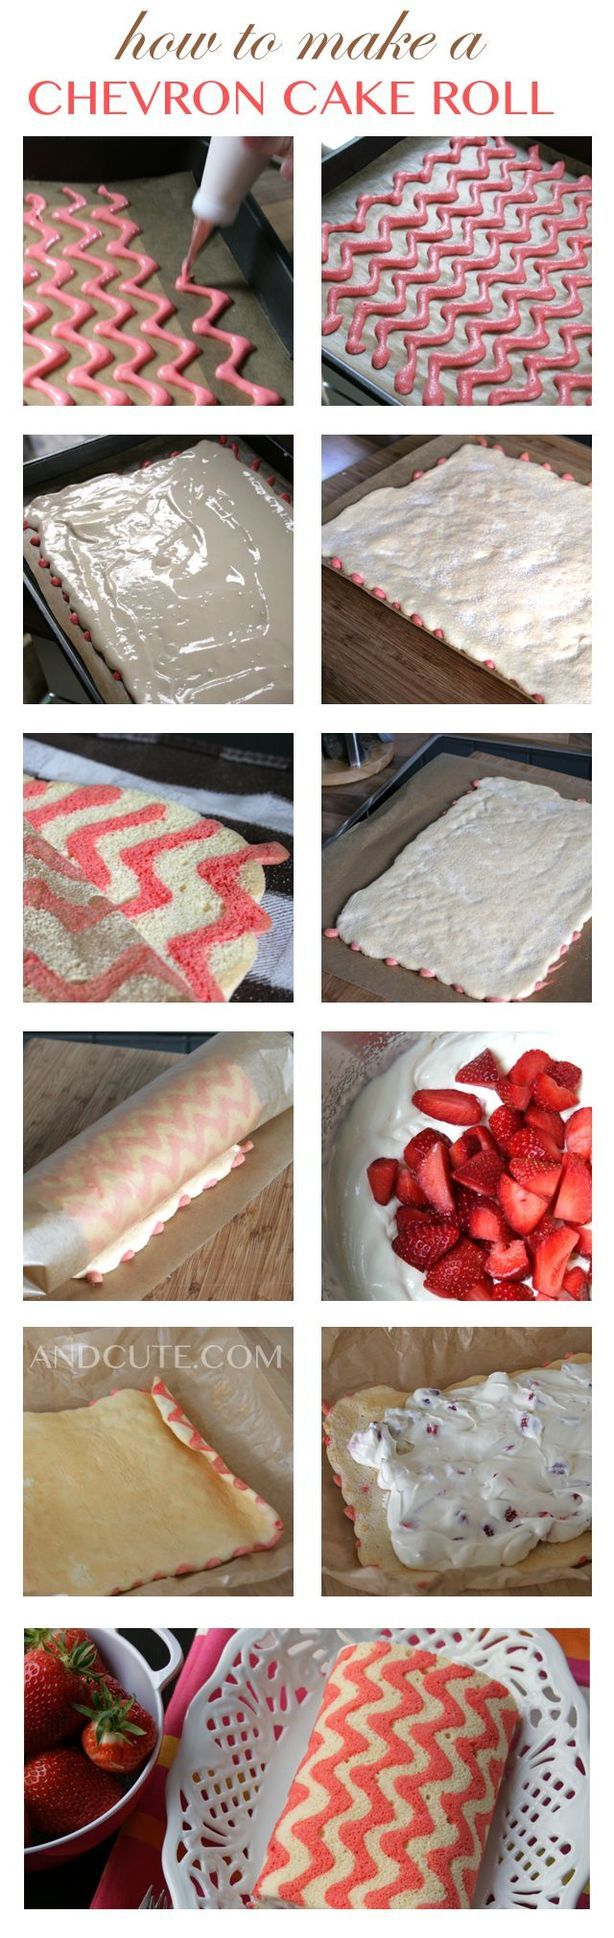 Recept op: http://andcute.com/how-to-make-a-chevron-zig-zag-cake-roll/(Engelse site)